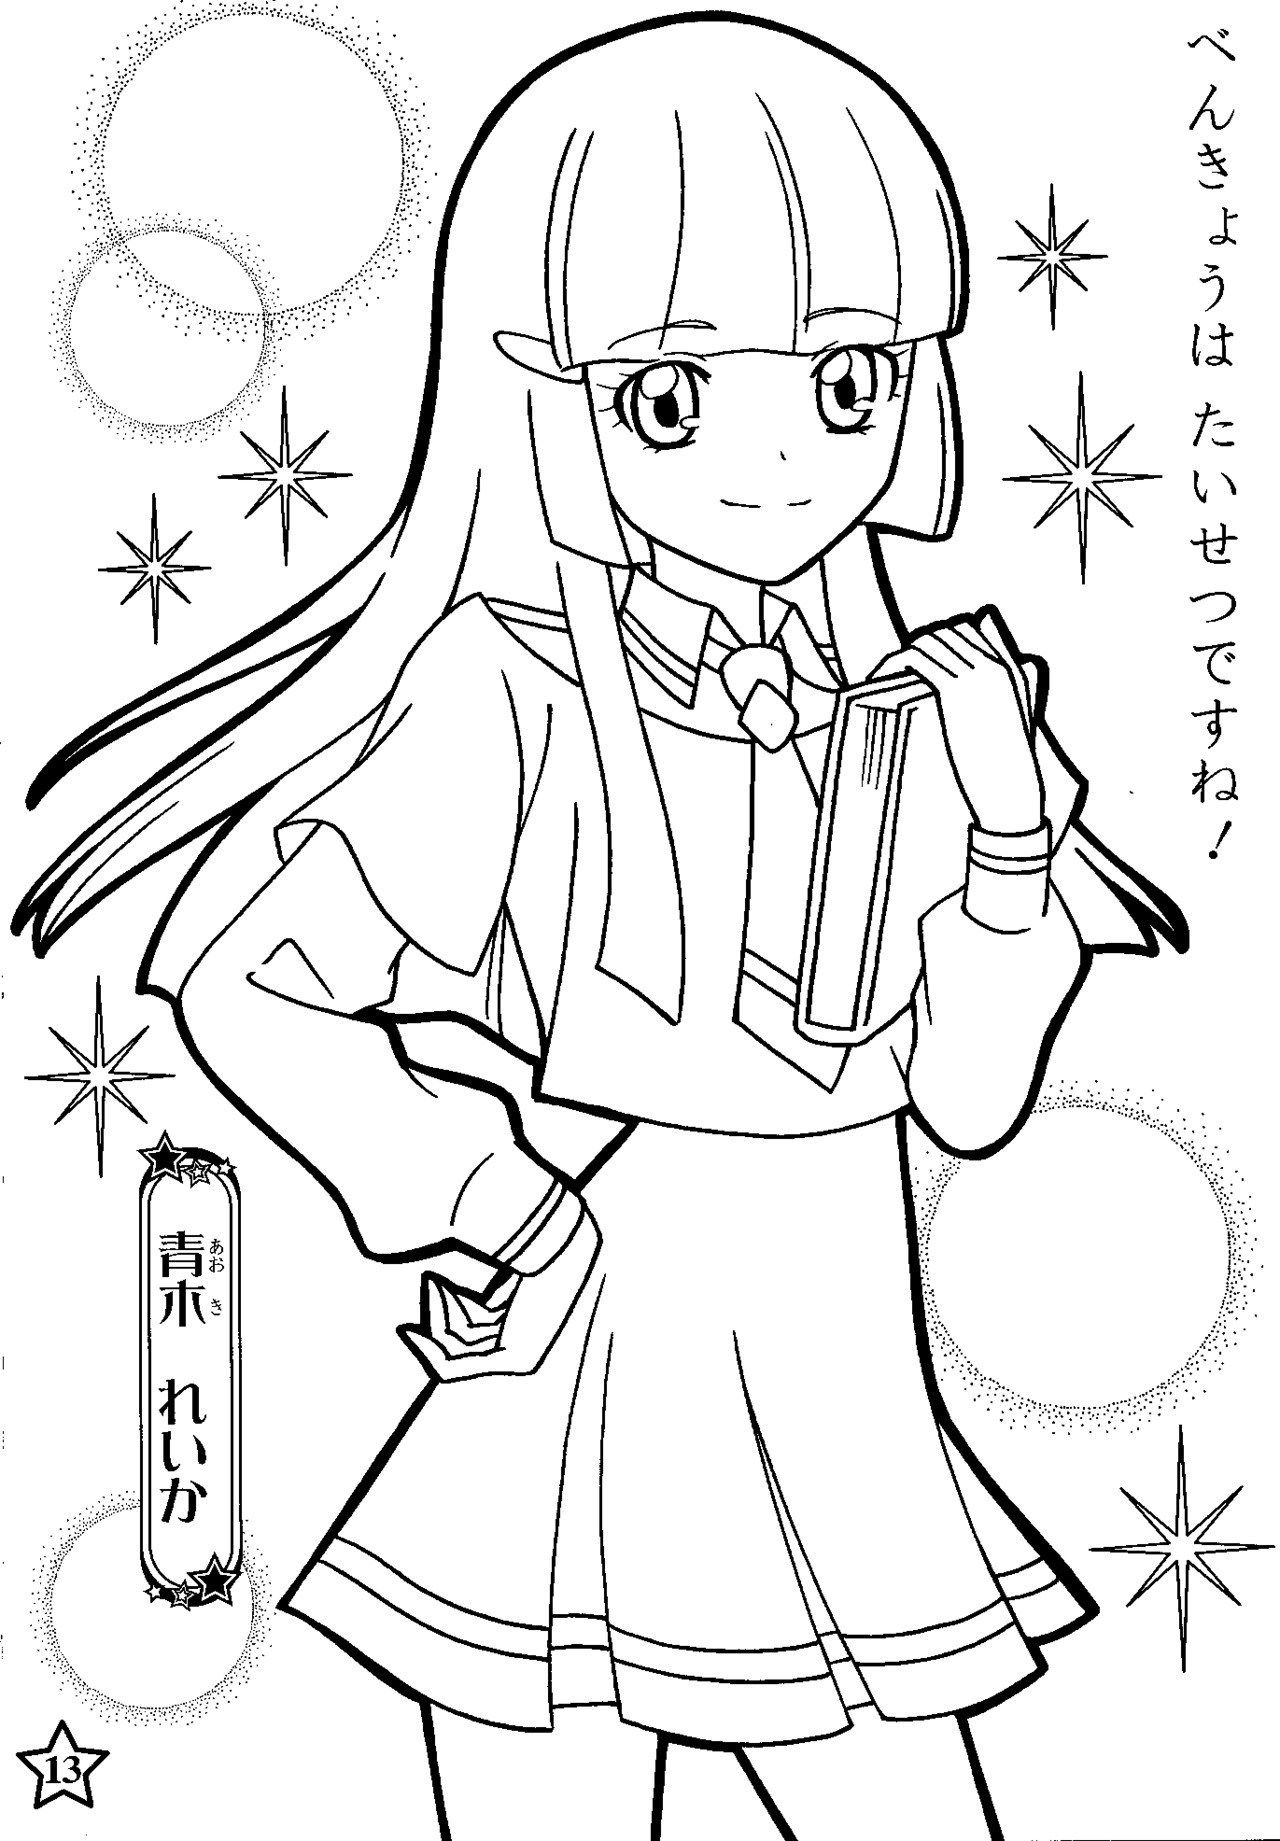 Glitter Force Coloring Pages Glitter Force Coloring Page 131 Smile Precure Arresting Pages New Entitlementtrap Com In 2020 Moon Coloring Pages Glitter Force Characters Cute Little Drawings